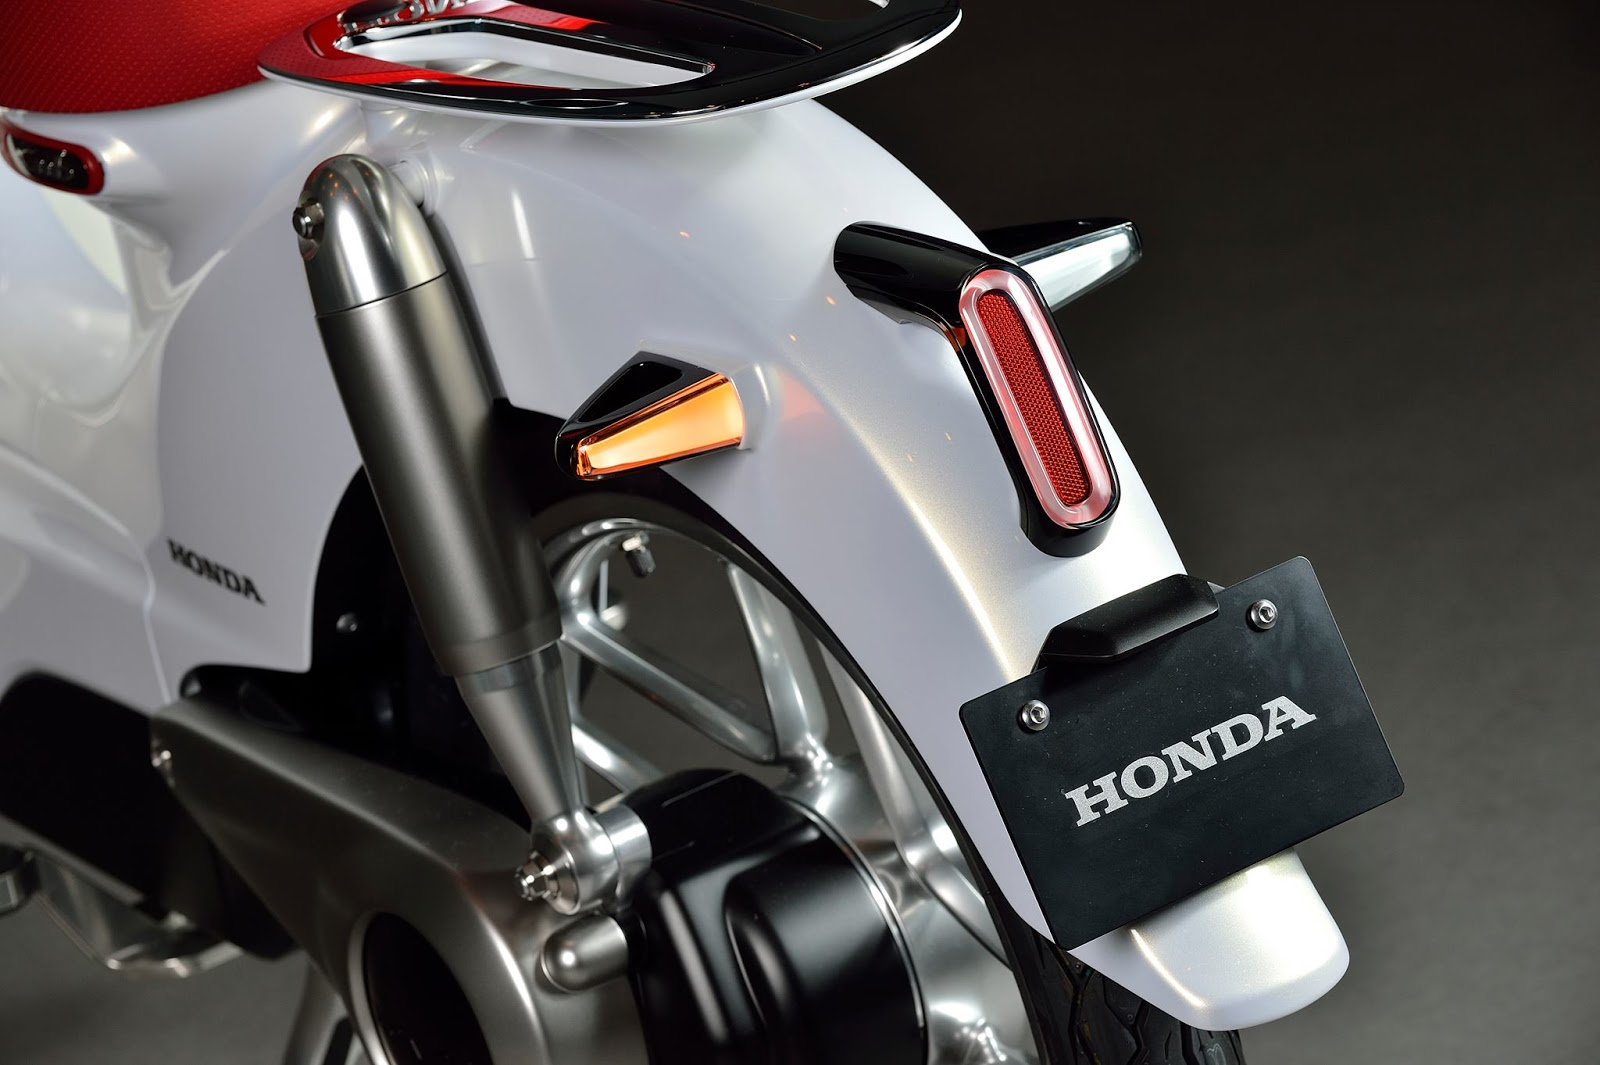 Honda EV Cub – 🛵 Electric Moped Scooter 2019